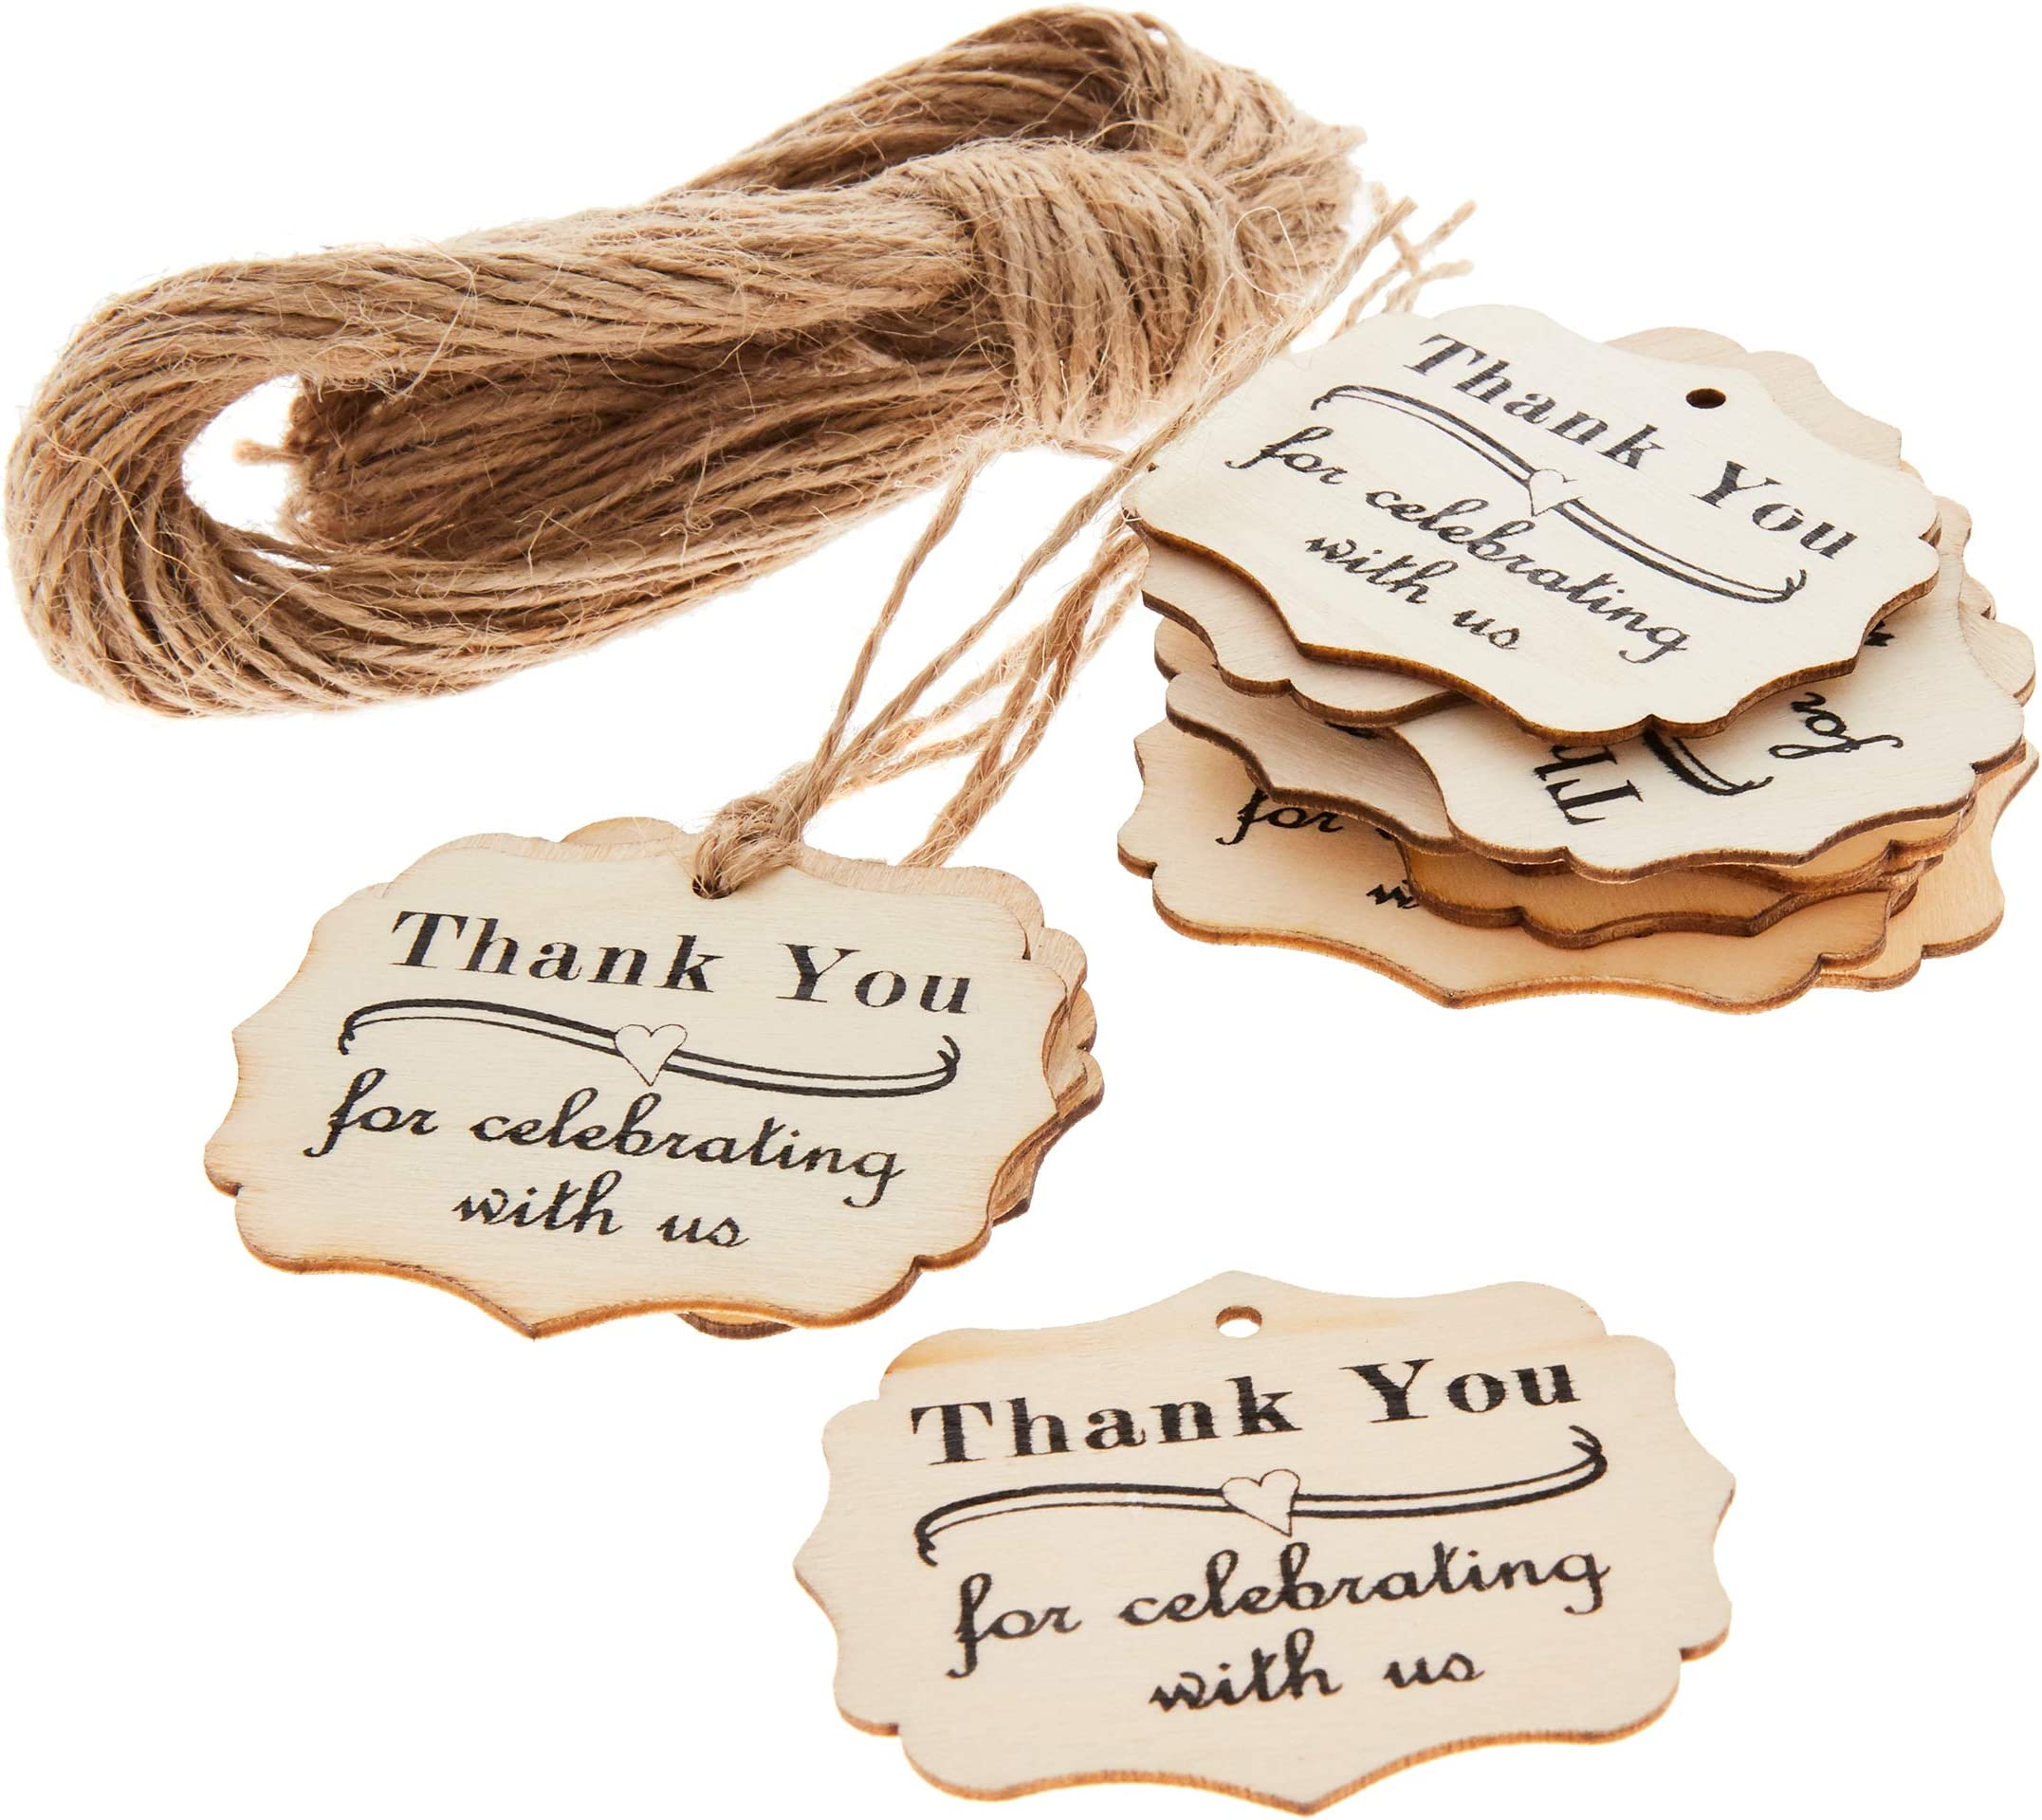 Thank You Party Tags RR-009 Personalized Thank You Wedding Favor Hang Tags Calligraphy Font Tags